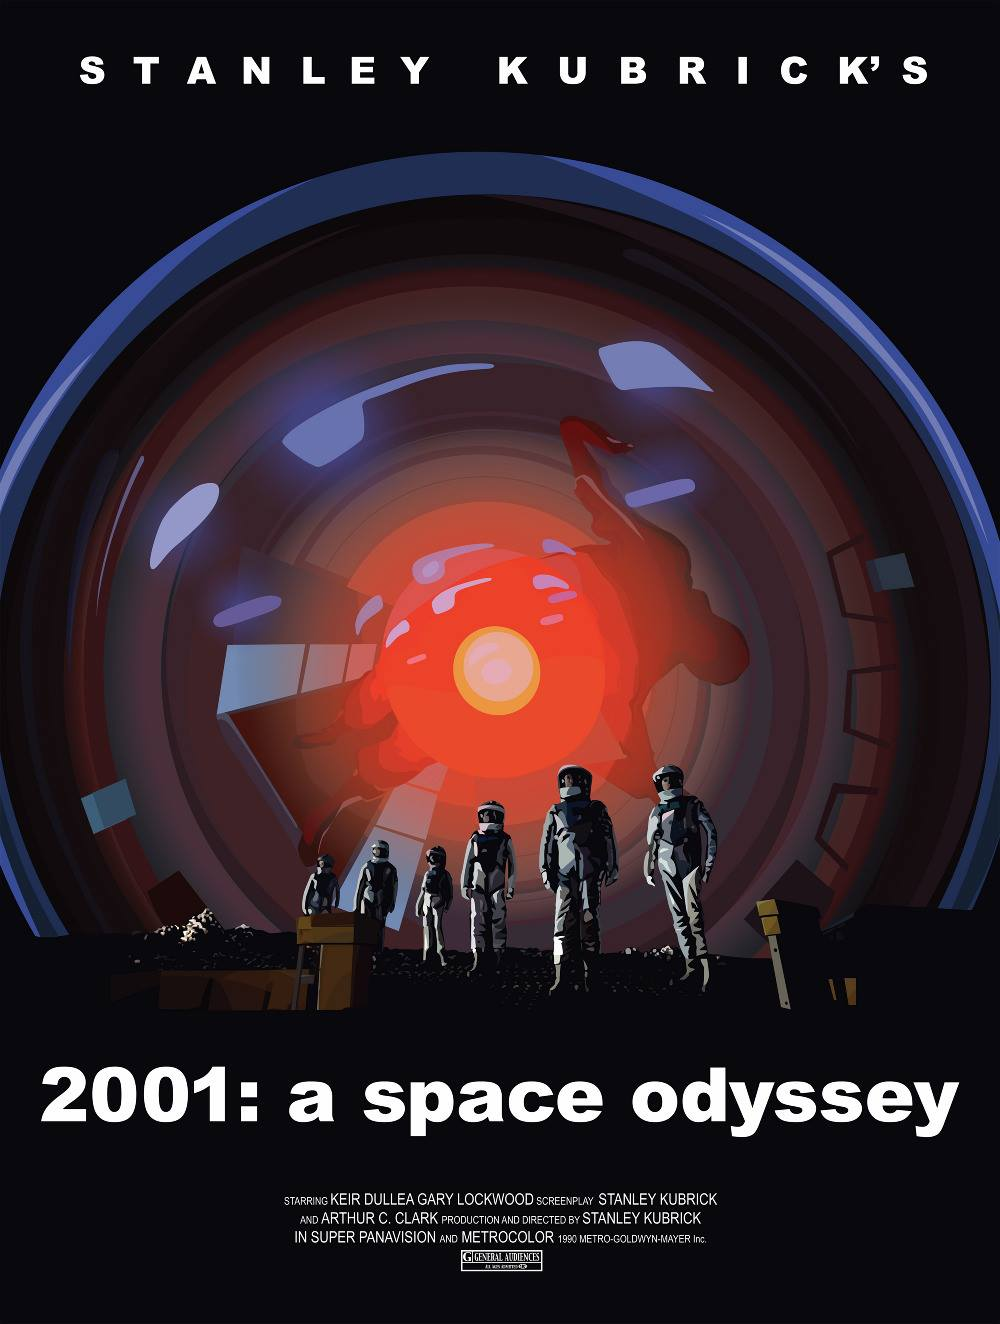 a review of the story space odyssey Free summary and analysis of the events in arthur c clarke's 2001: a space odyssey that wonâ origin story to explain the coming of super space baby.